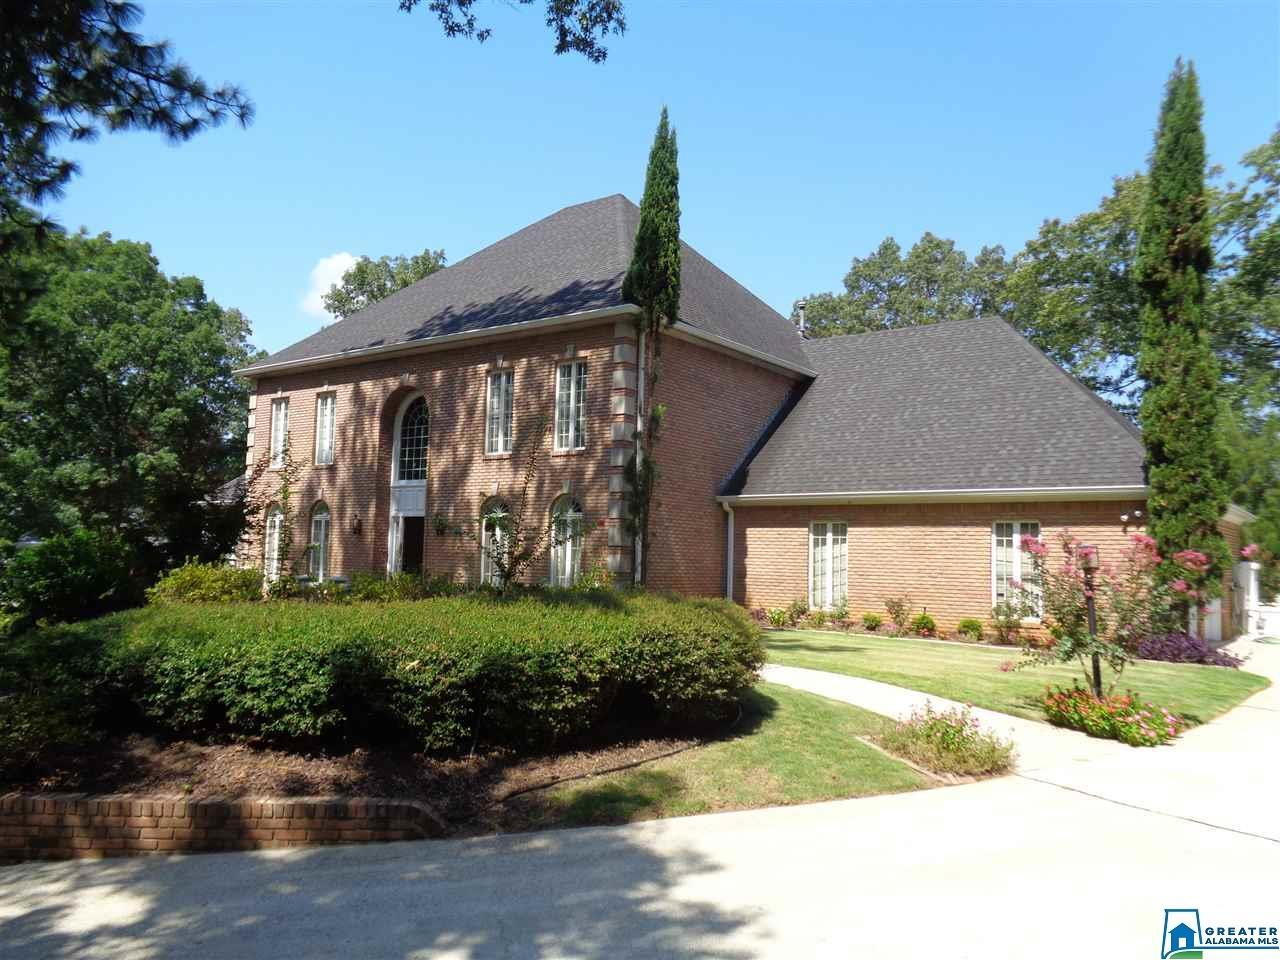 2580 DOLLY RIDGE RD, Vestavia Hills, AL 35243 - MLS#: 892062